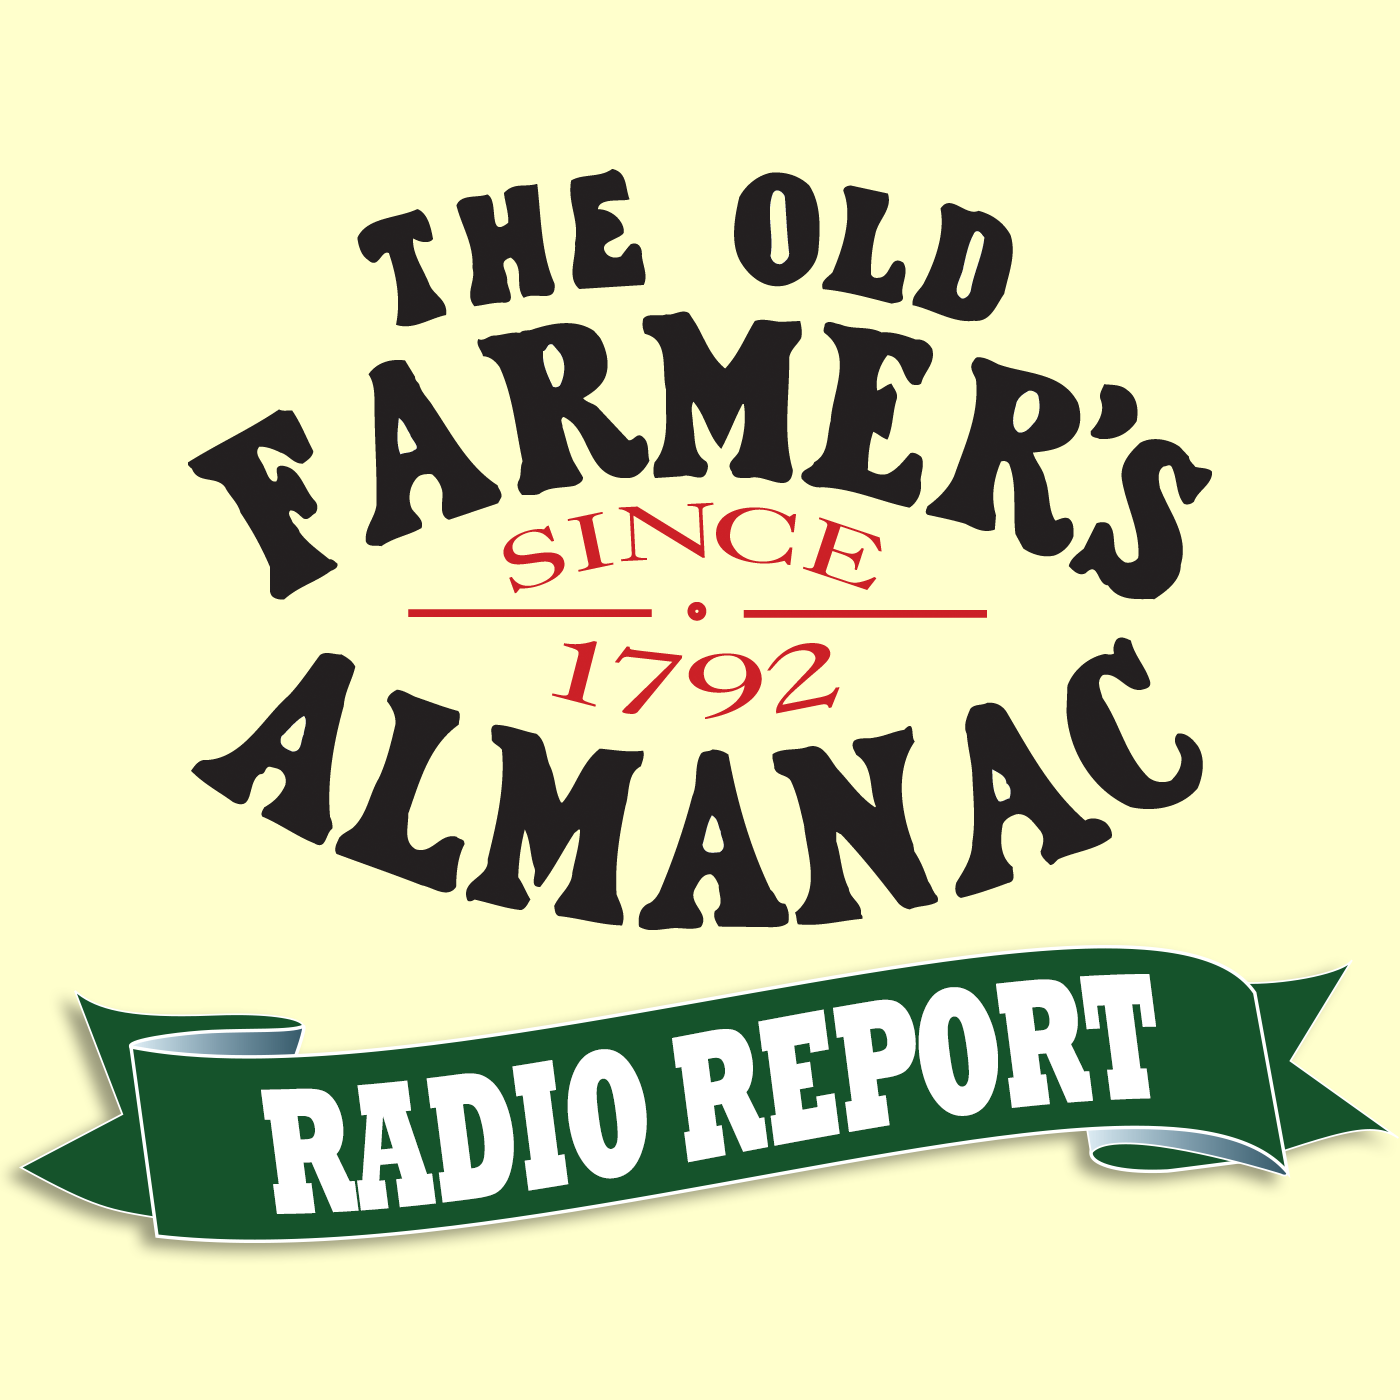 The Old Farmer's Almanac Radio Report